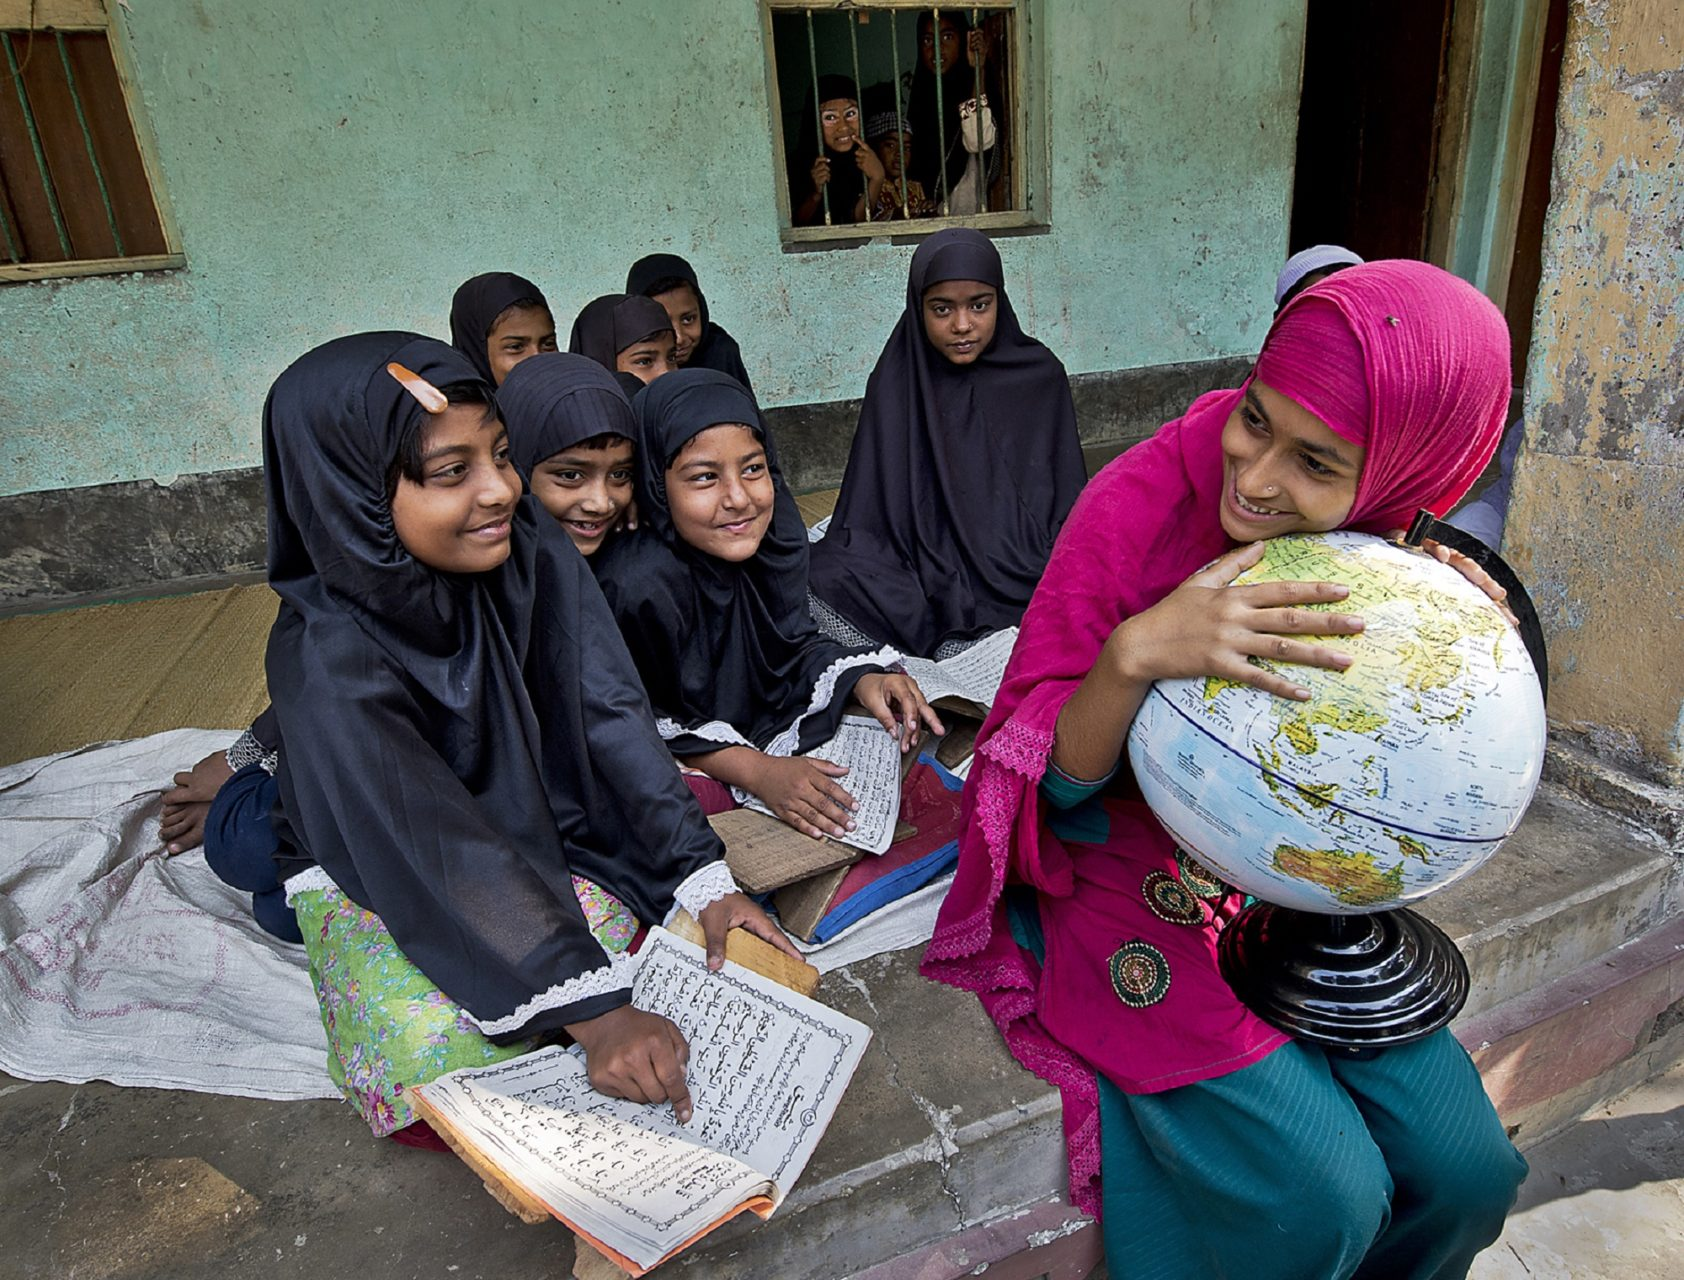 Girls reading and laughing. One girl holds to a globe